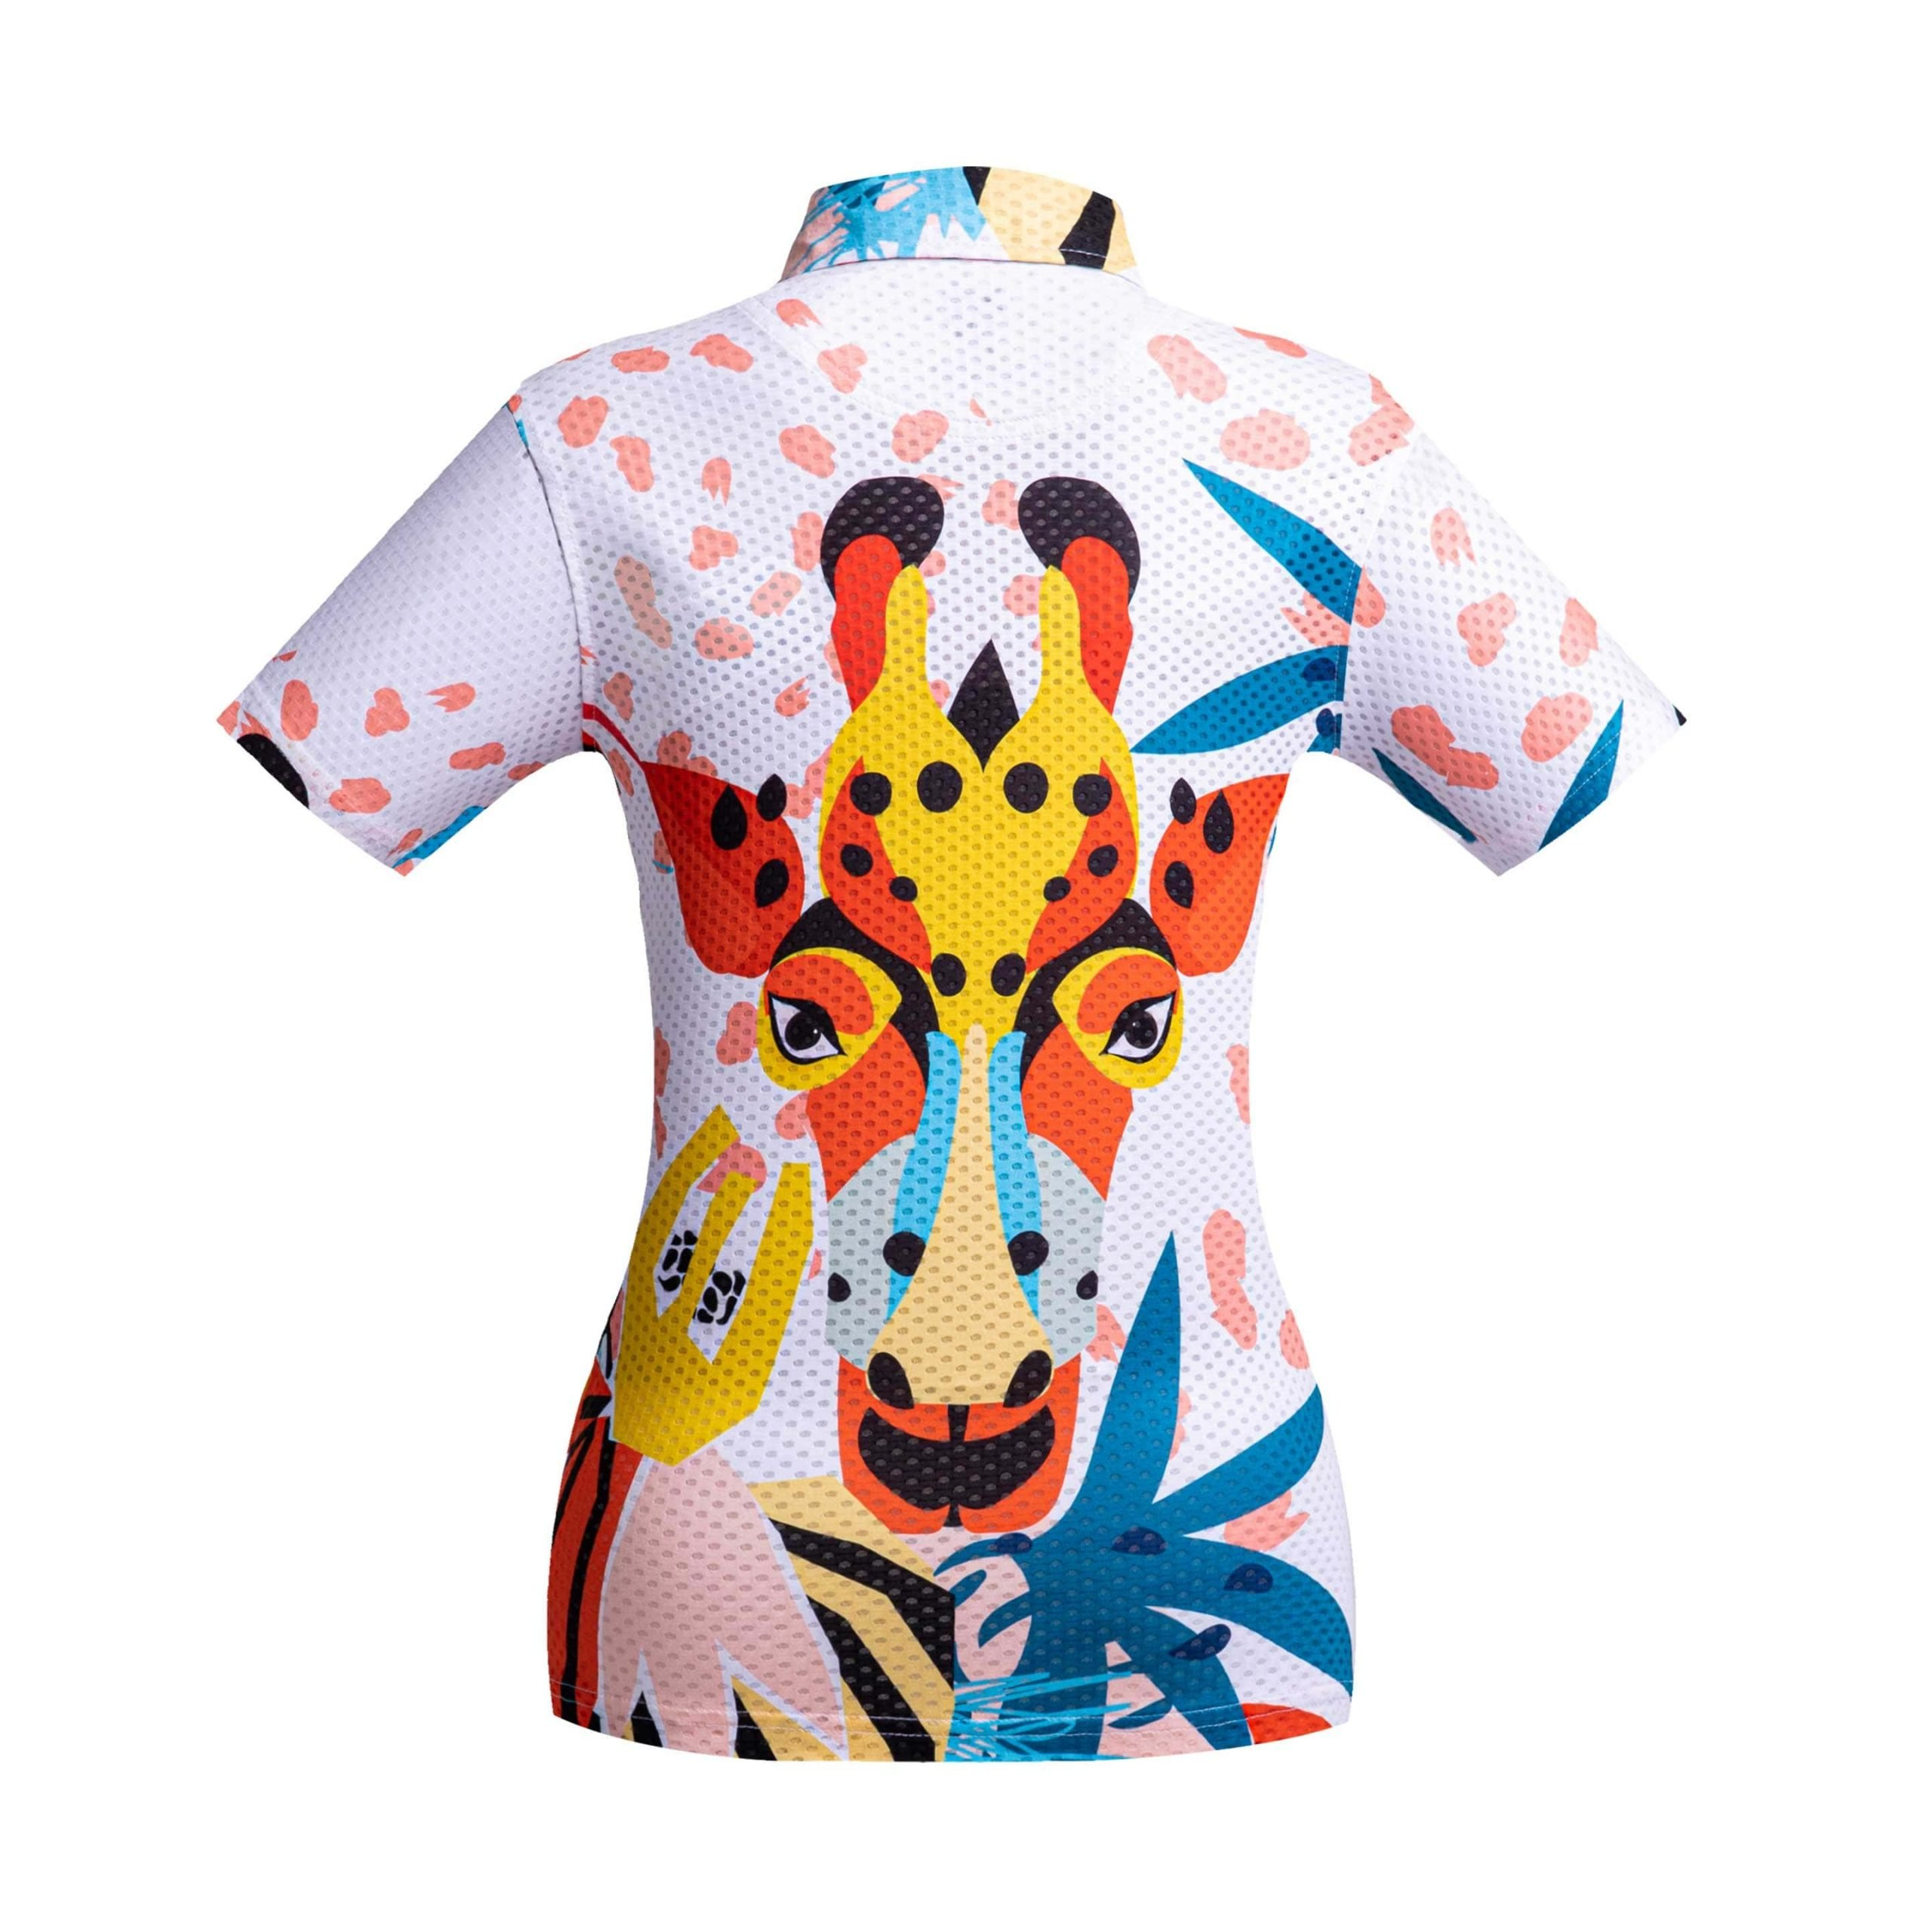 Golf shirt - Giraffe